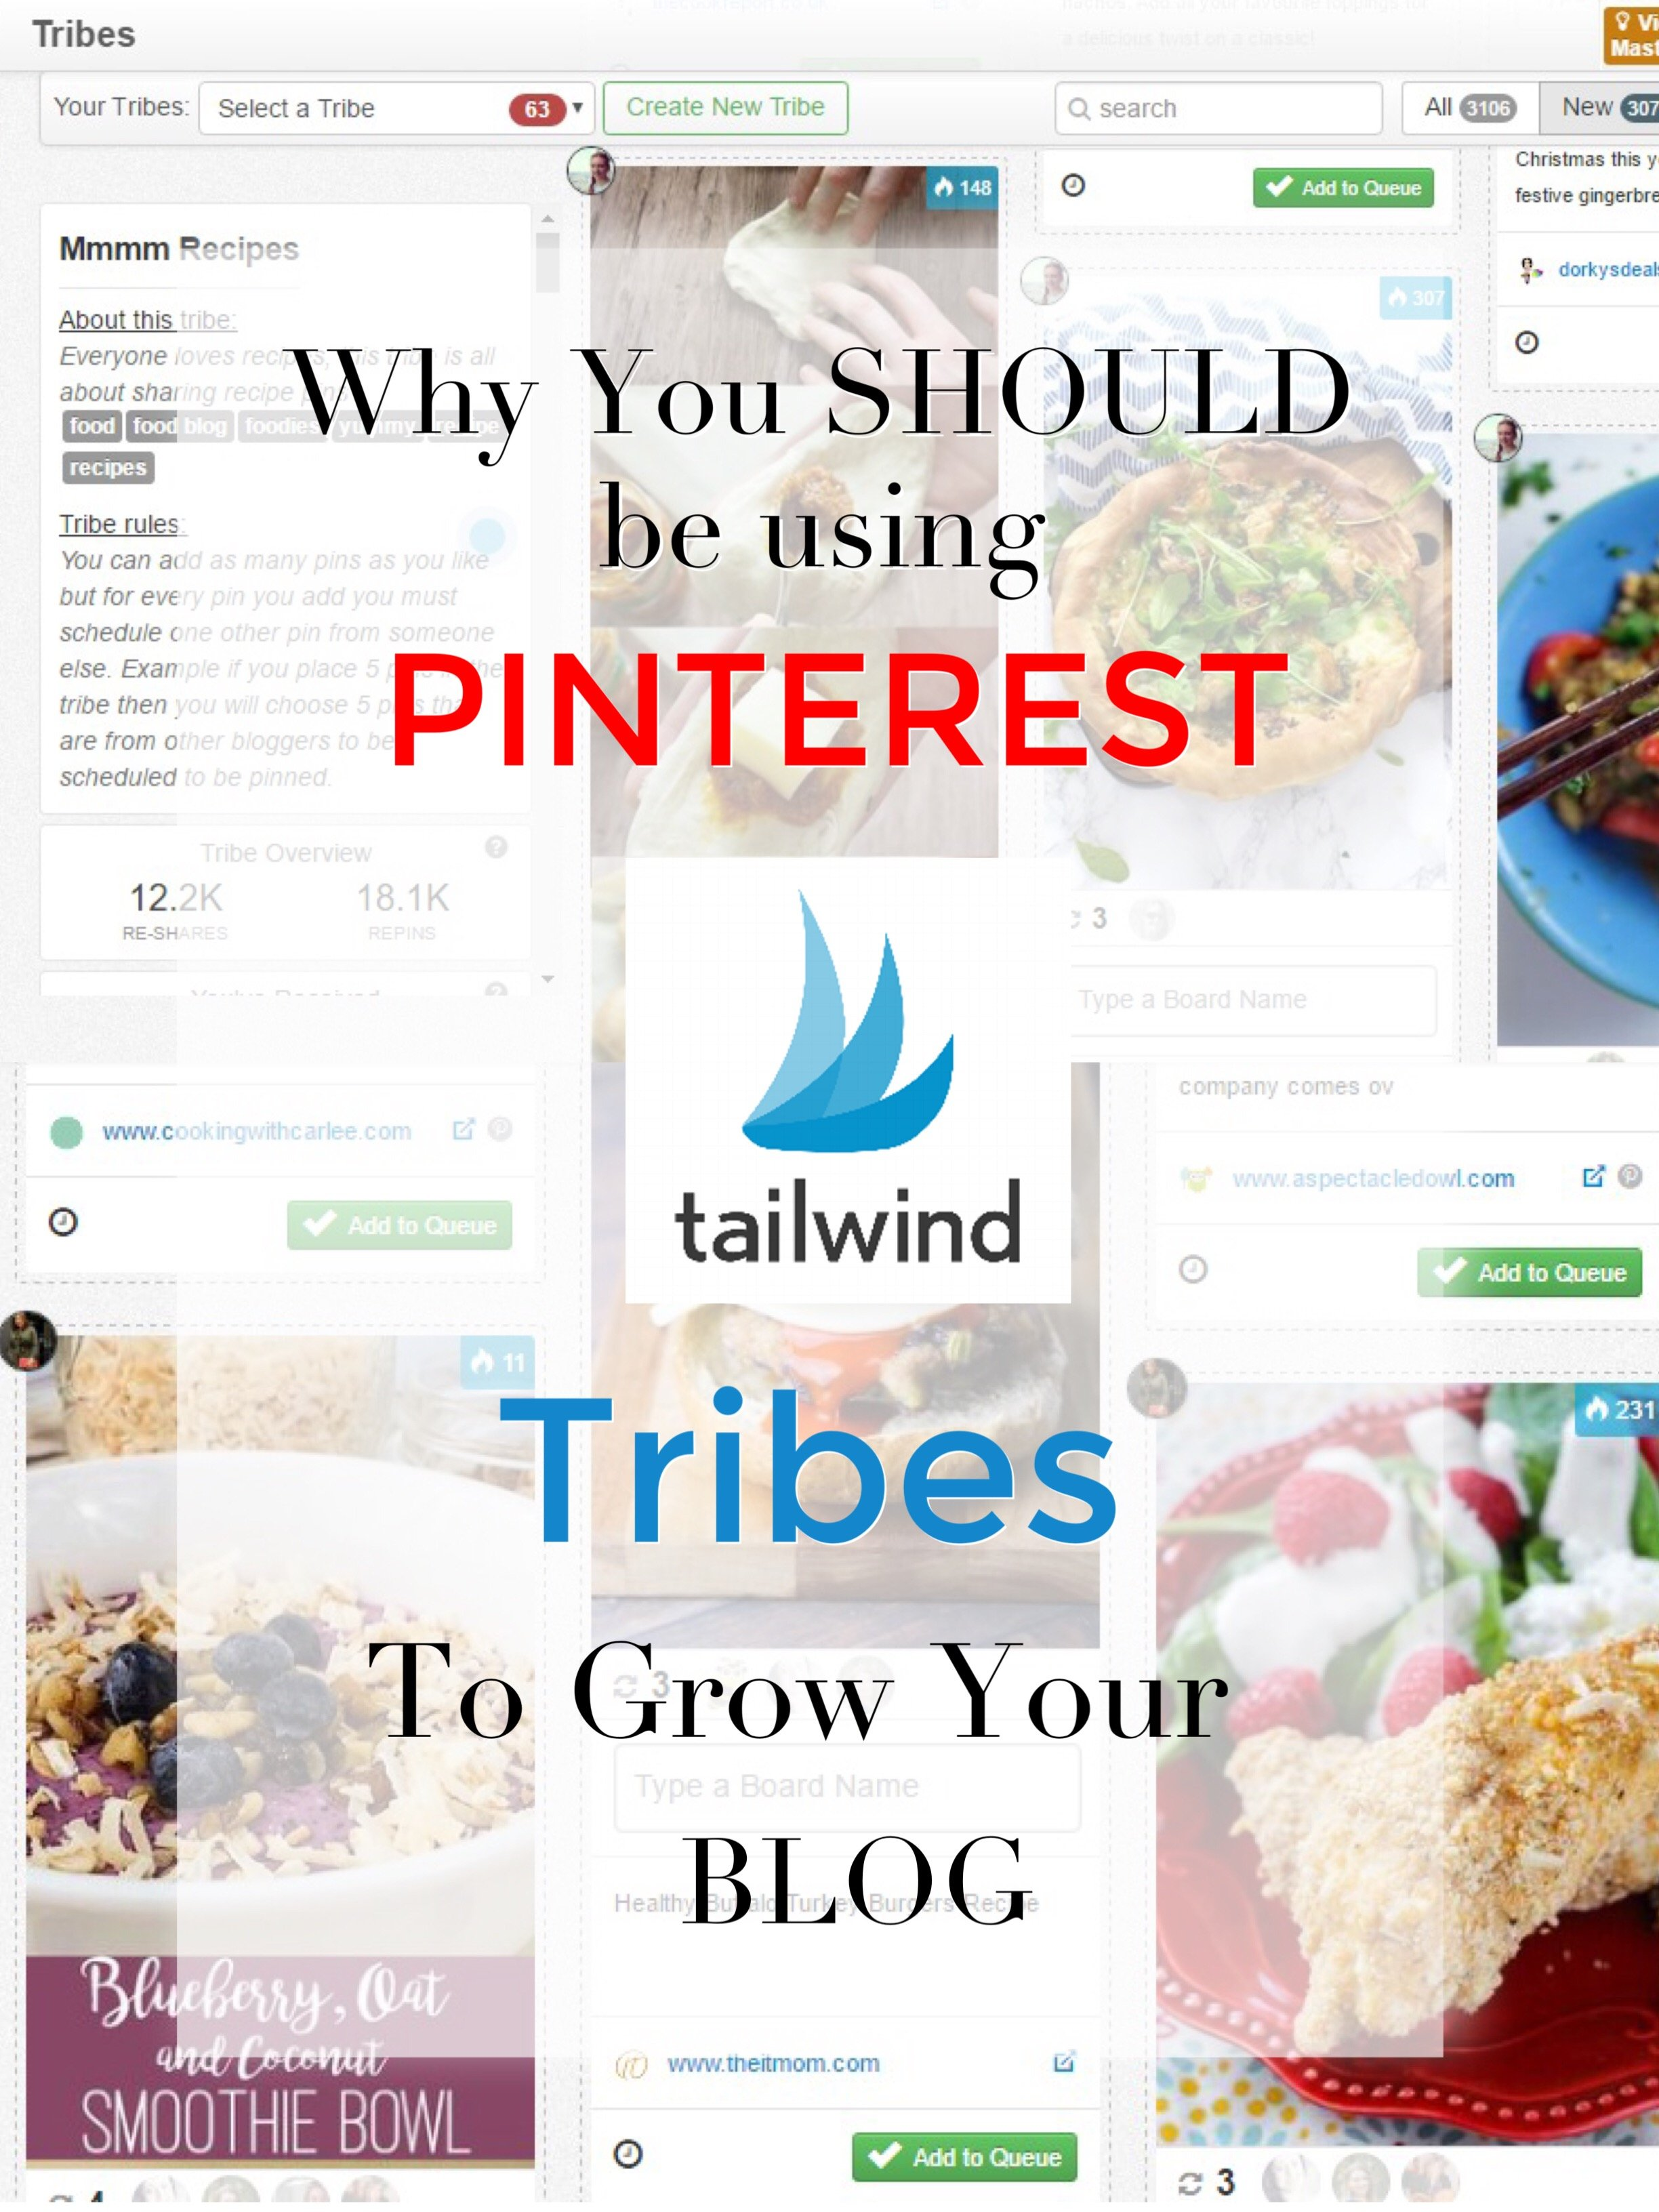 Why You Should Start Using Tailwind Pinterest Tribes to Grow Your Blog